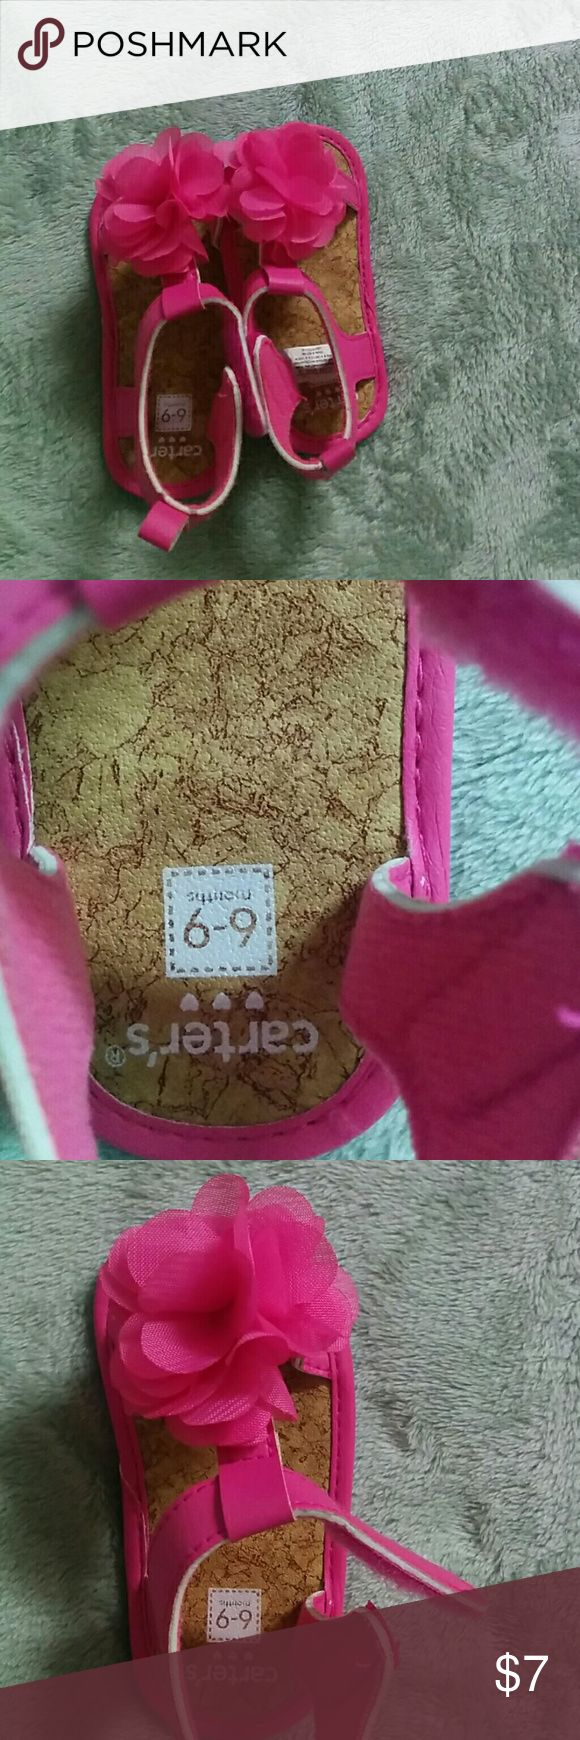 Carters baby shoes Baby princes shoes 6_9 months, gently used Carter's Shoes